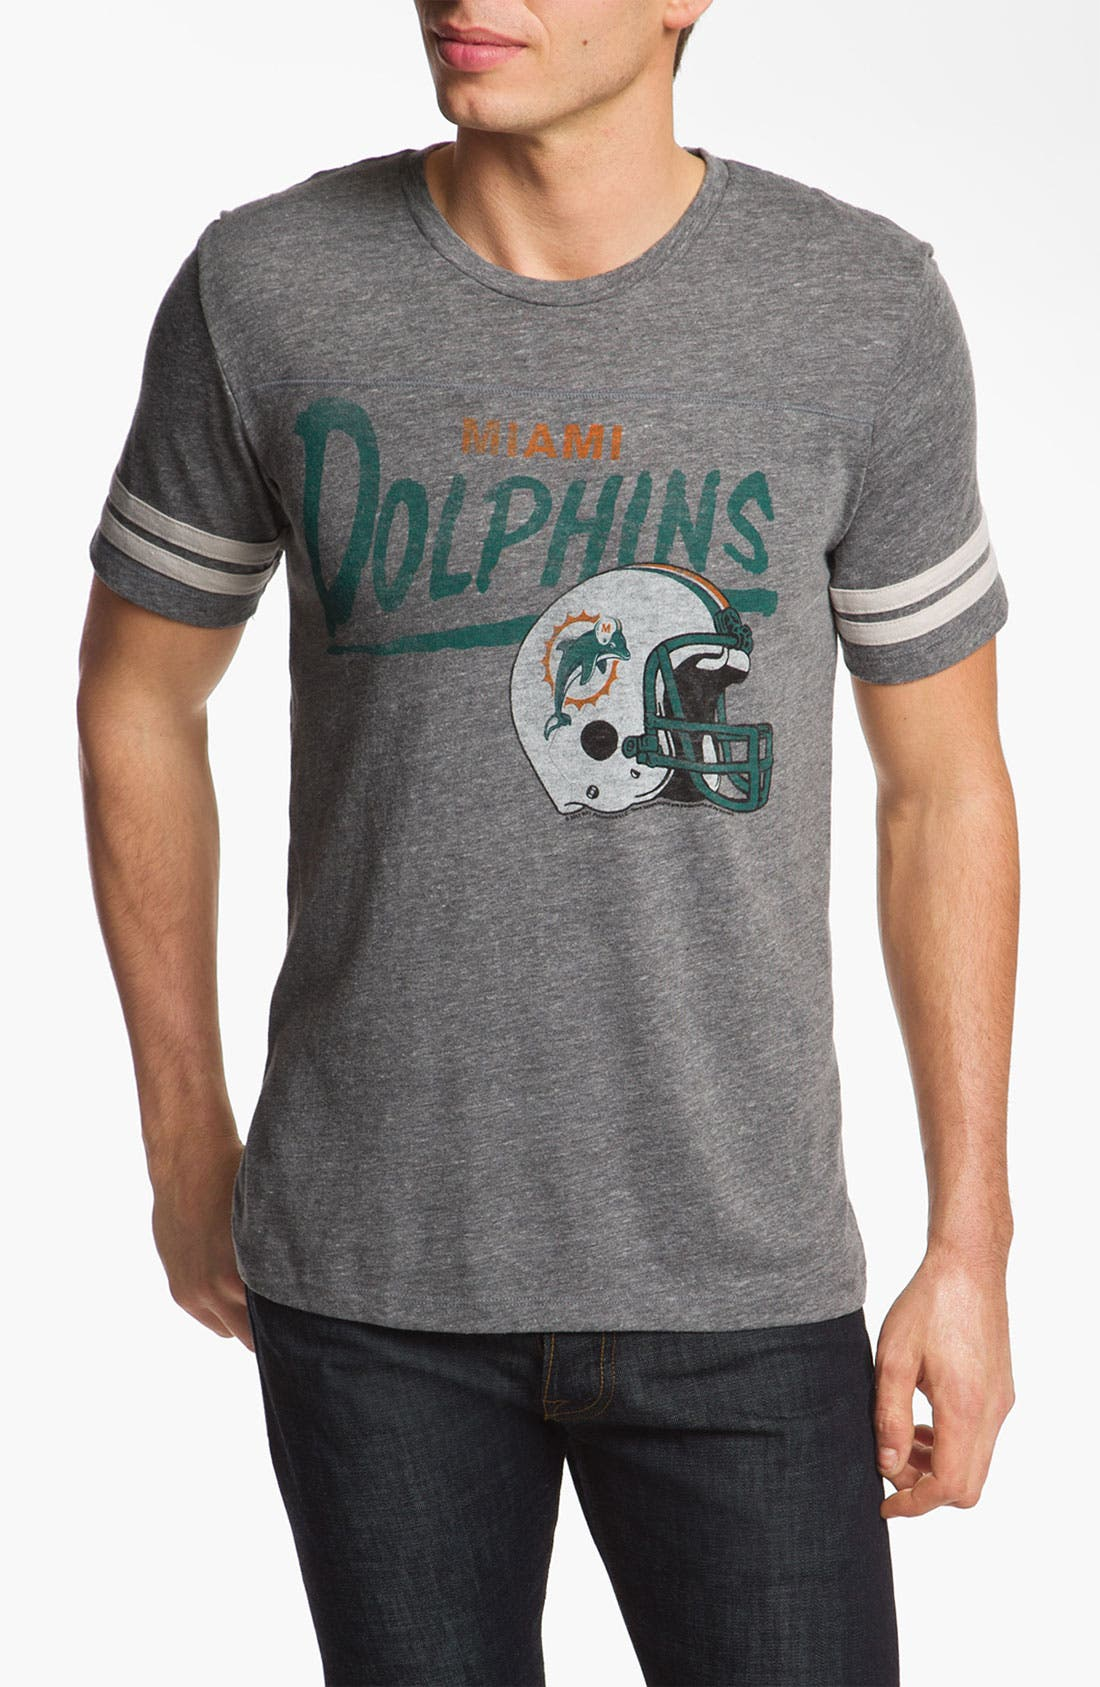 Alternate Image 1 Selected - Junk Food 'Miami Dolphins' T-Shirt